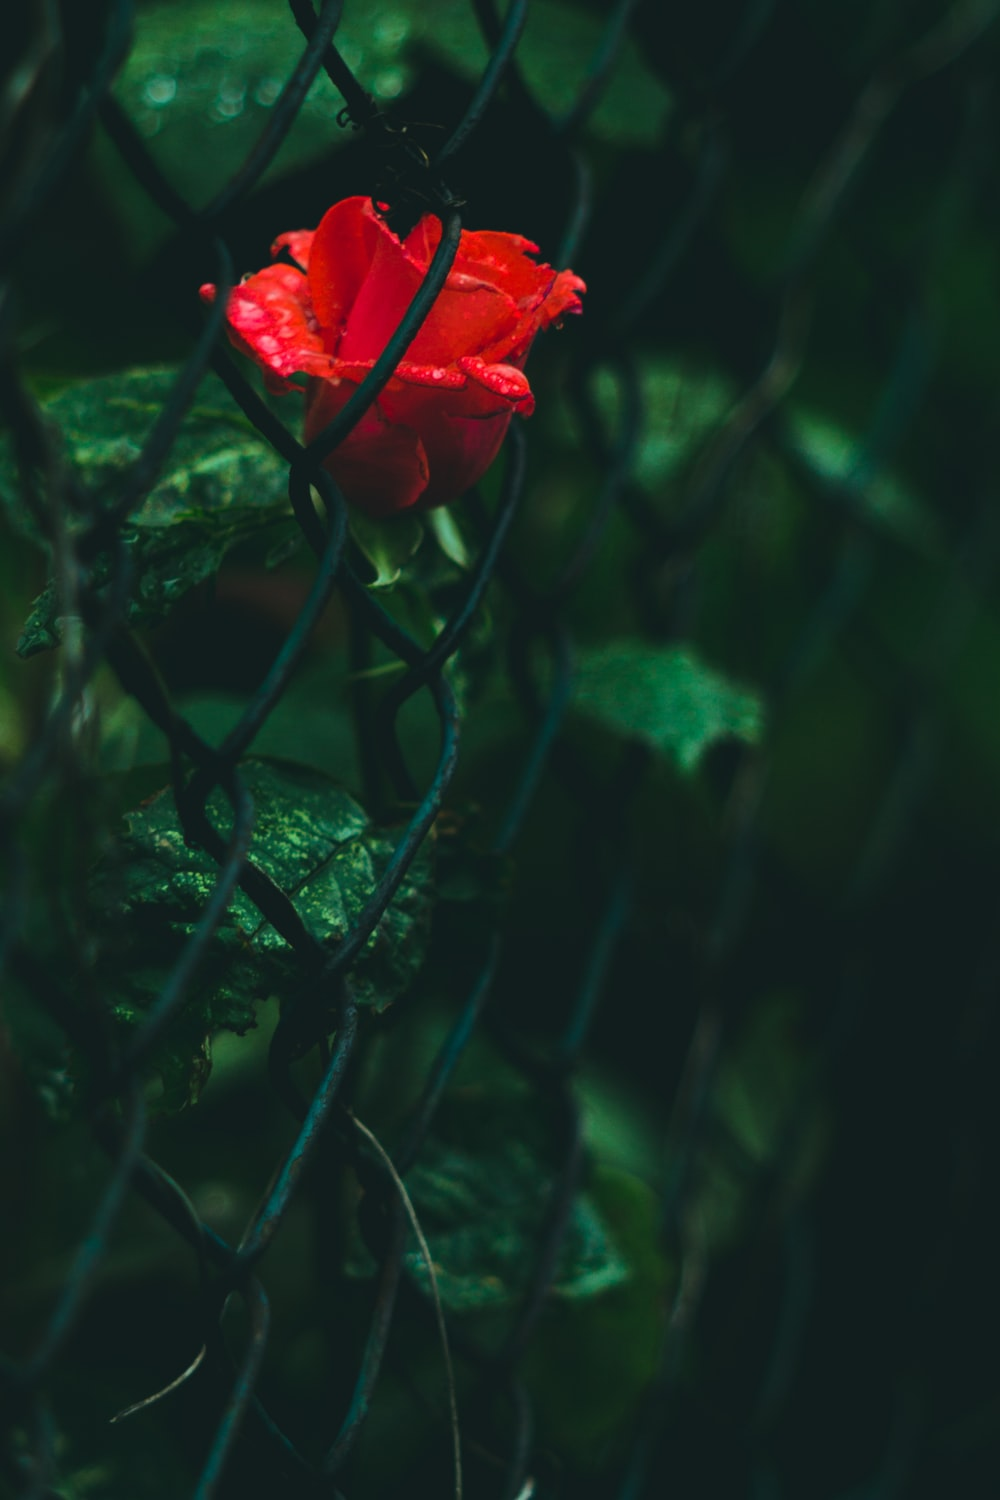 selective focus photography of red rose flower in chain link fence during daytime